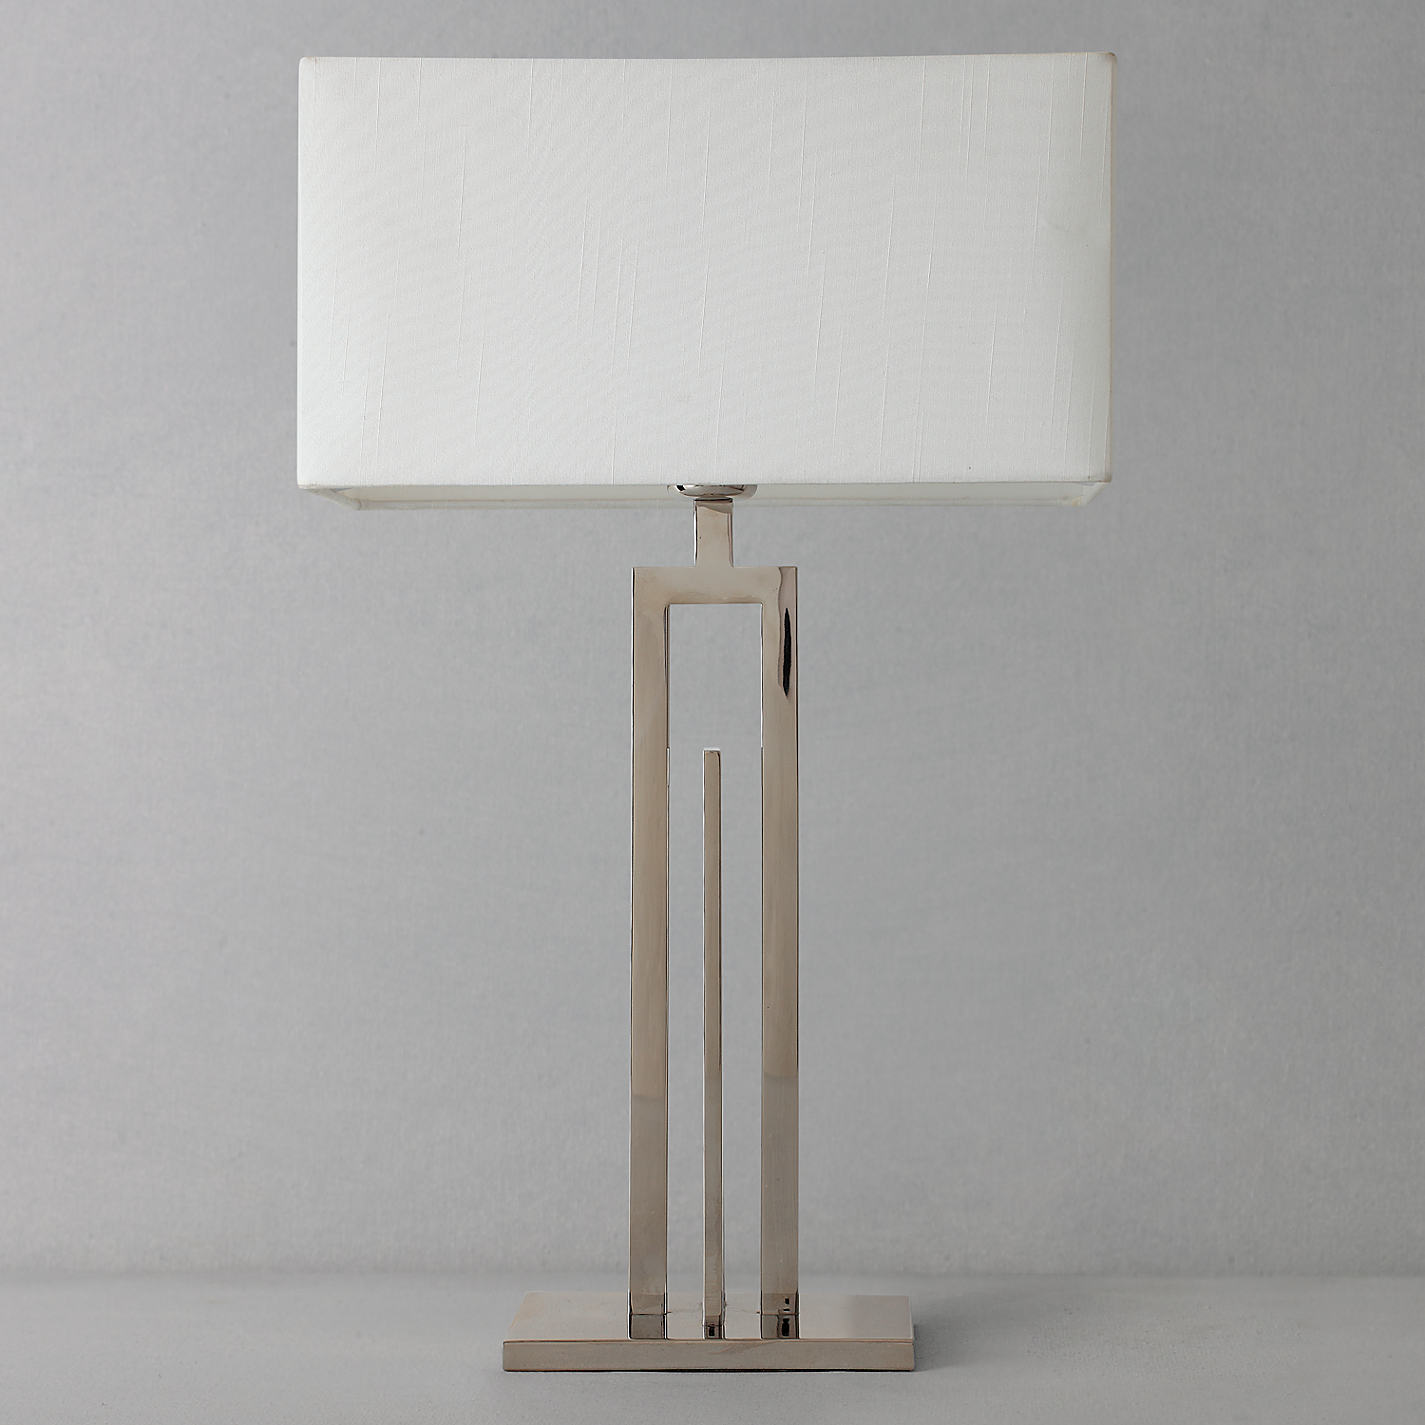 Buy john lewis amari table lamp john lewis buy john lewis amari table lamp online at johnlewis geotapseo Image collections